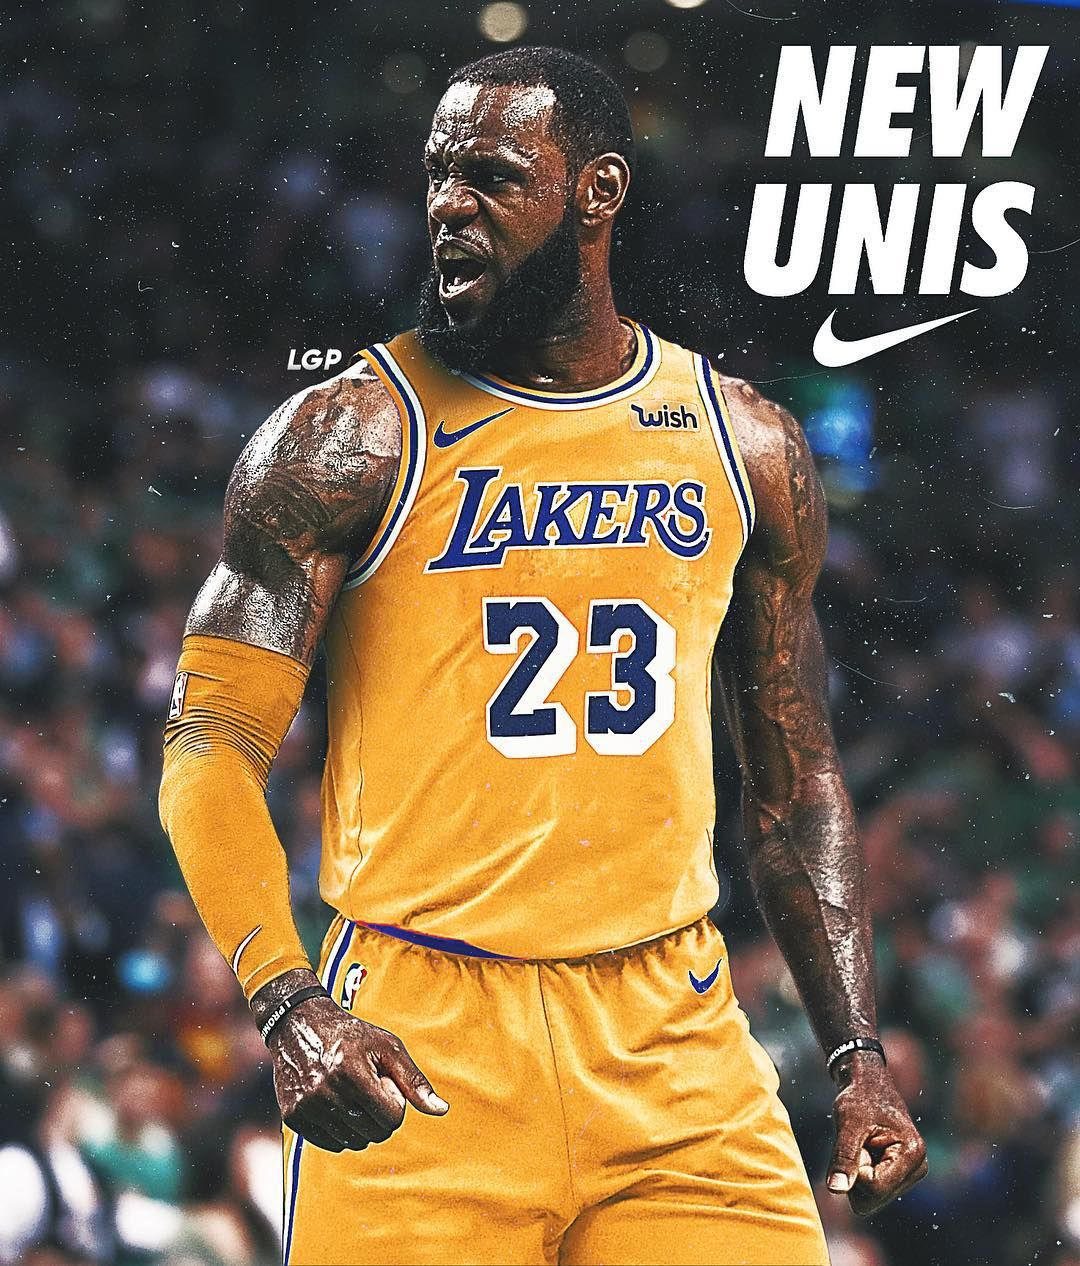 58af6ce59b0 How are u guys feeling these new retro showtime Laker Jerseys that were  shown in some stores and will be officially leaked in a few days